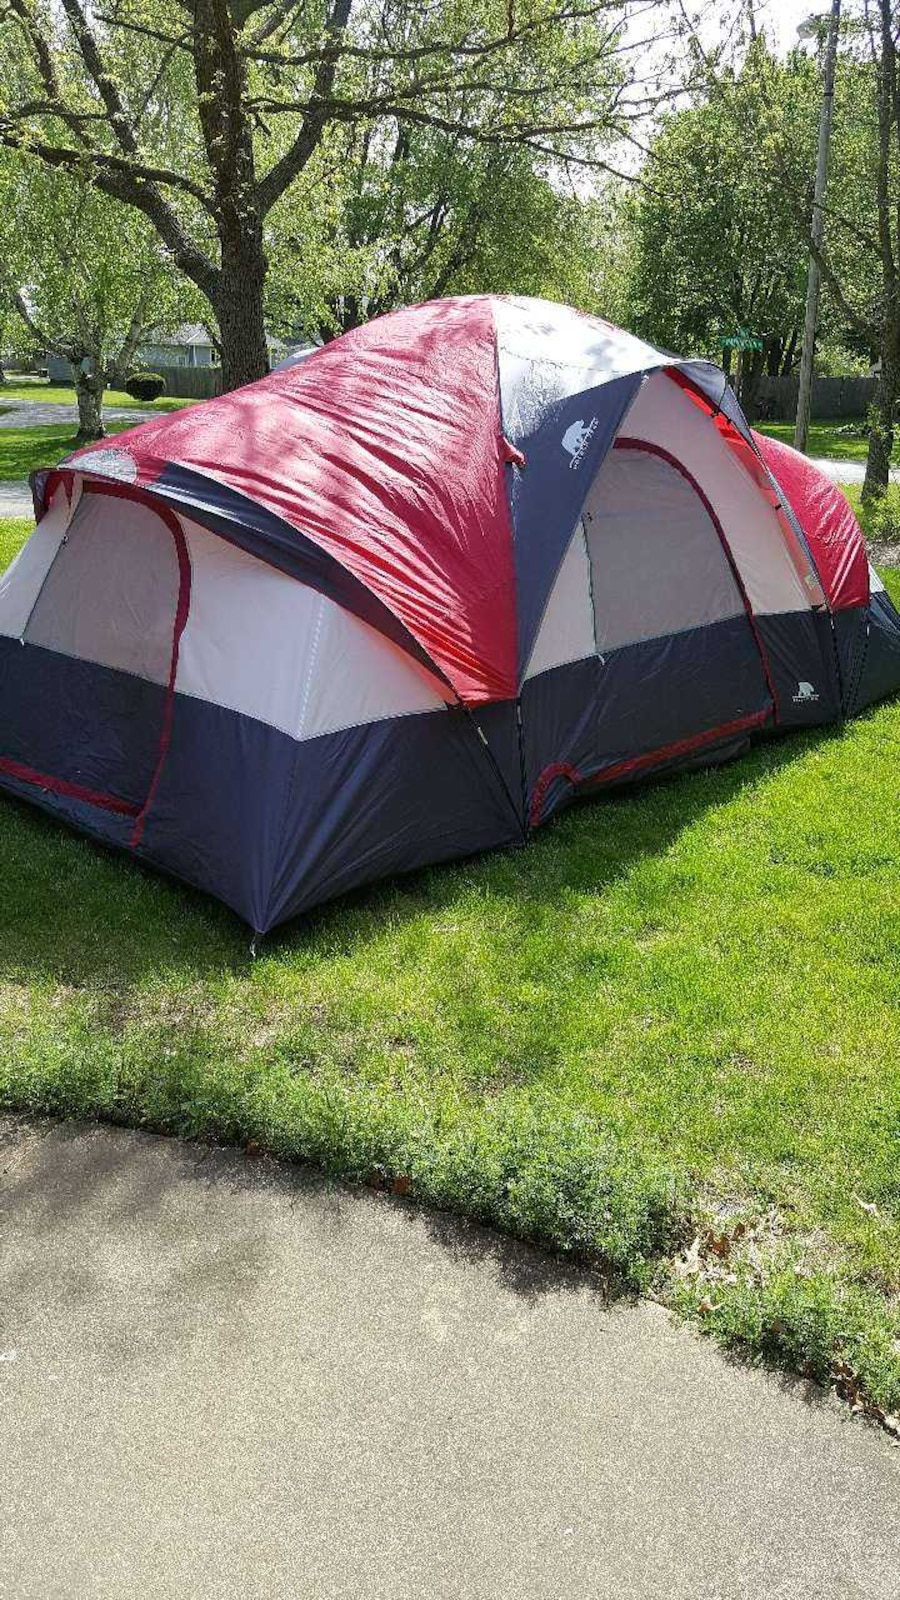 Lot 292 Of 631 Golden Bear 7 8 Person 3 Room Dome Tent Yosemite 18